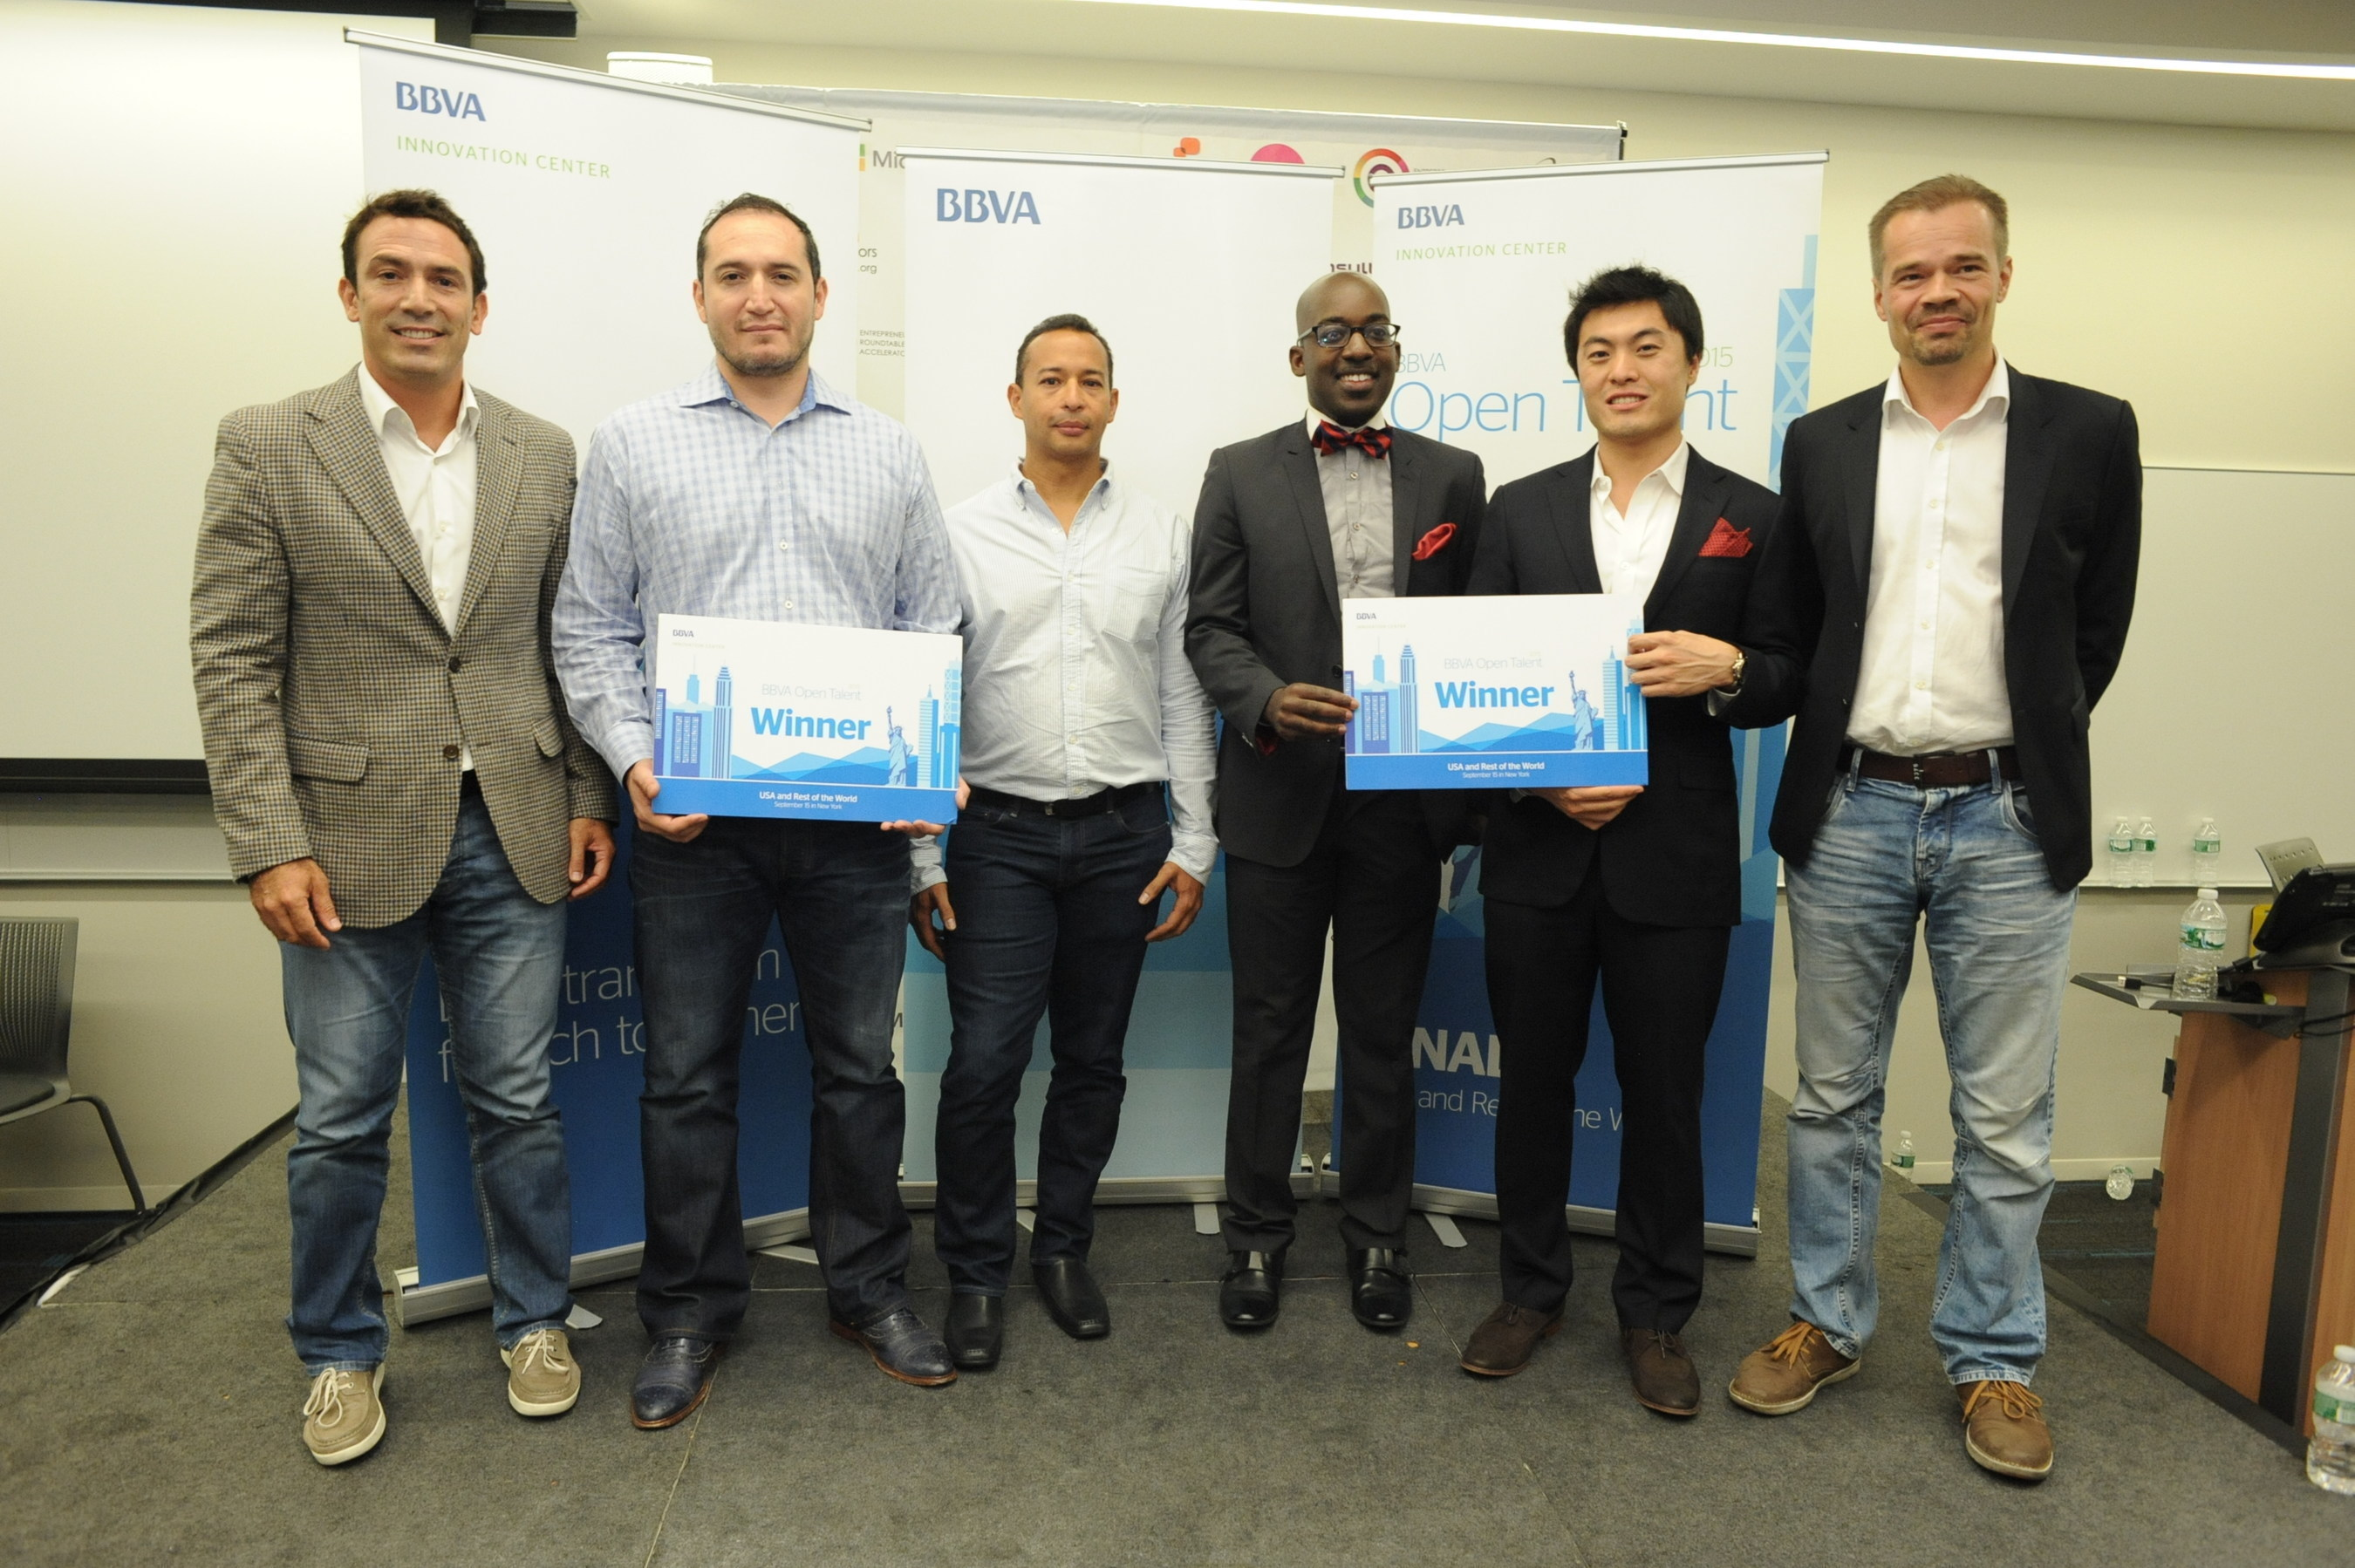 (l-r) Director of Innovation Centers and Open Innovation at BBVA Gustavo Vinacua, LendingFront CEO and co-founder Jorge Sun, LendingFront CTO and co-founder Dario Vergara, ModernLend co-founder Kobina Ansah, ModernLend co-founder Shuo Zhang, BBVA Chief Development Officer and General Manager of New Digital Businesses Teppo Paavola